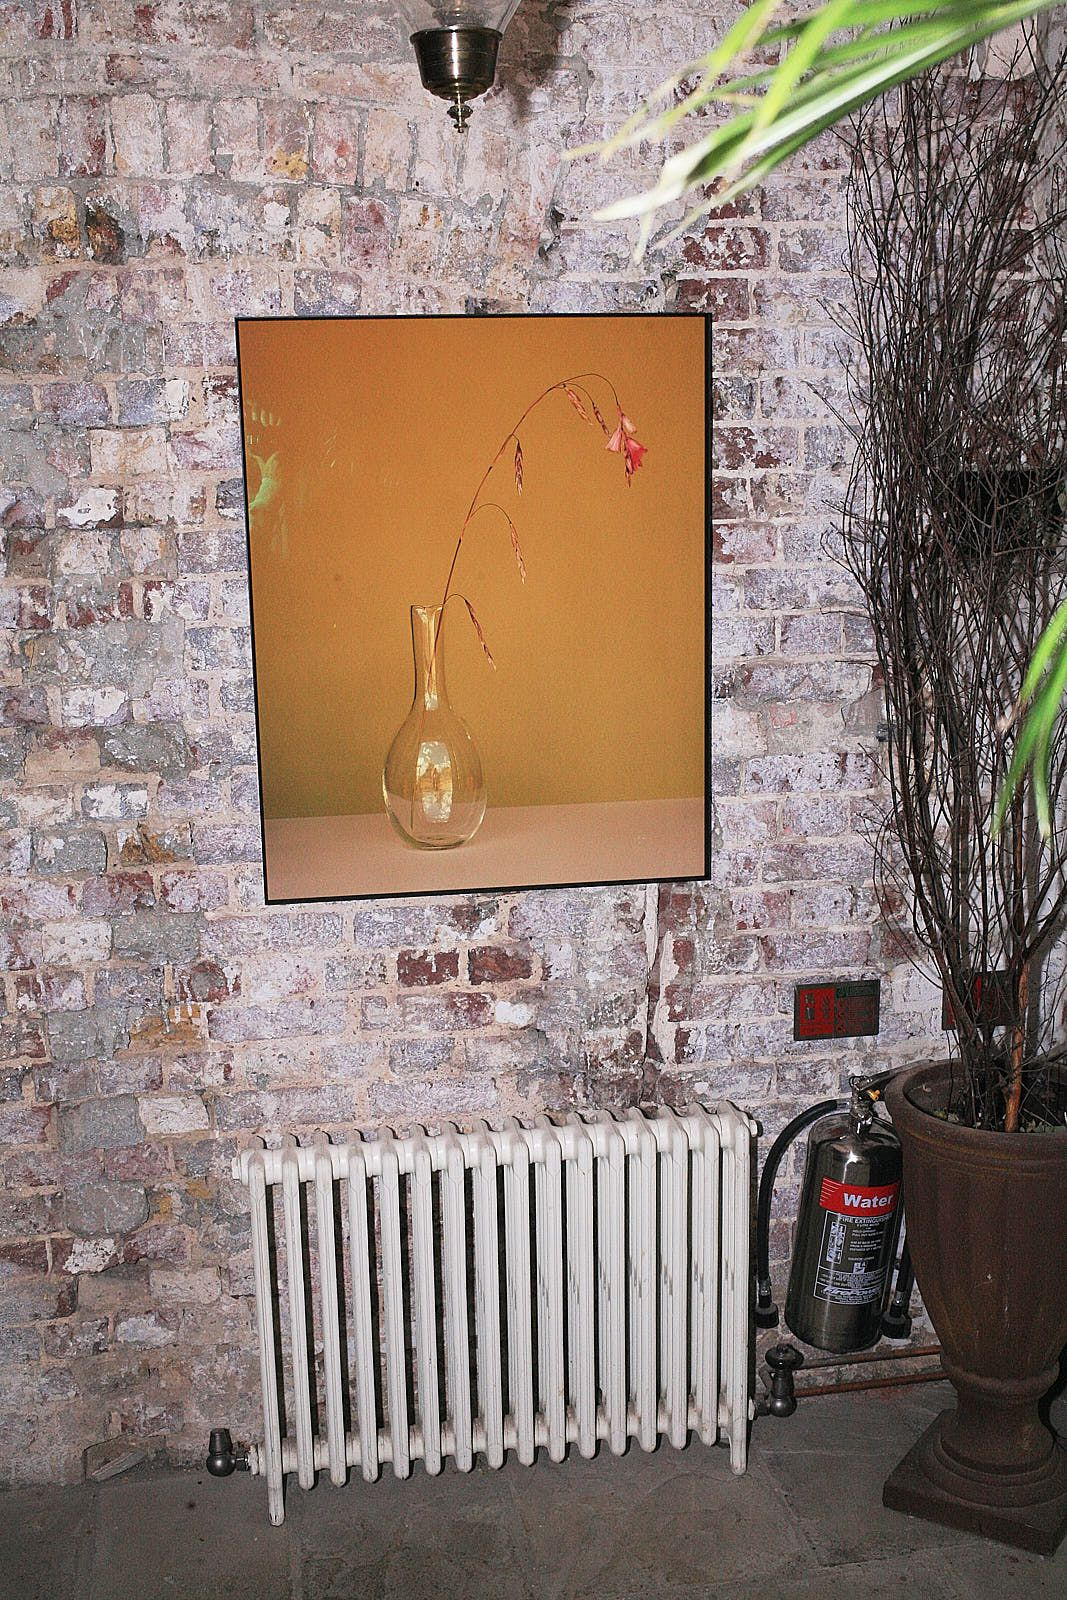 Gold art, a radiator, and an exposed brick wall in Sessions Arts Club dining room